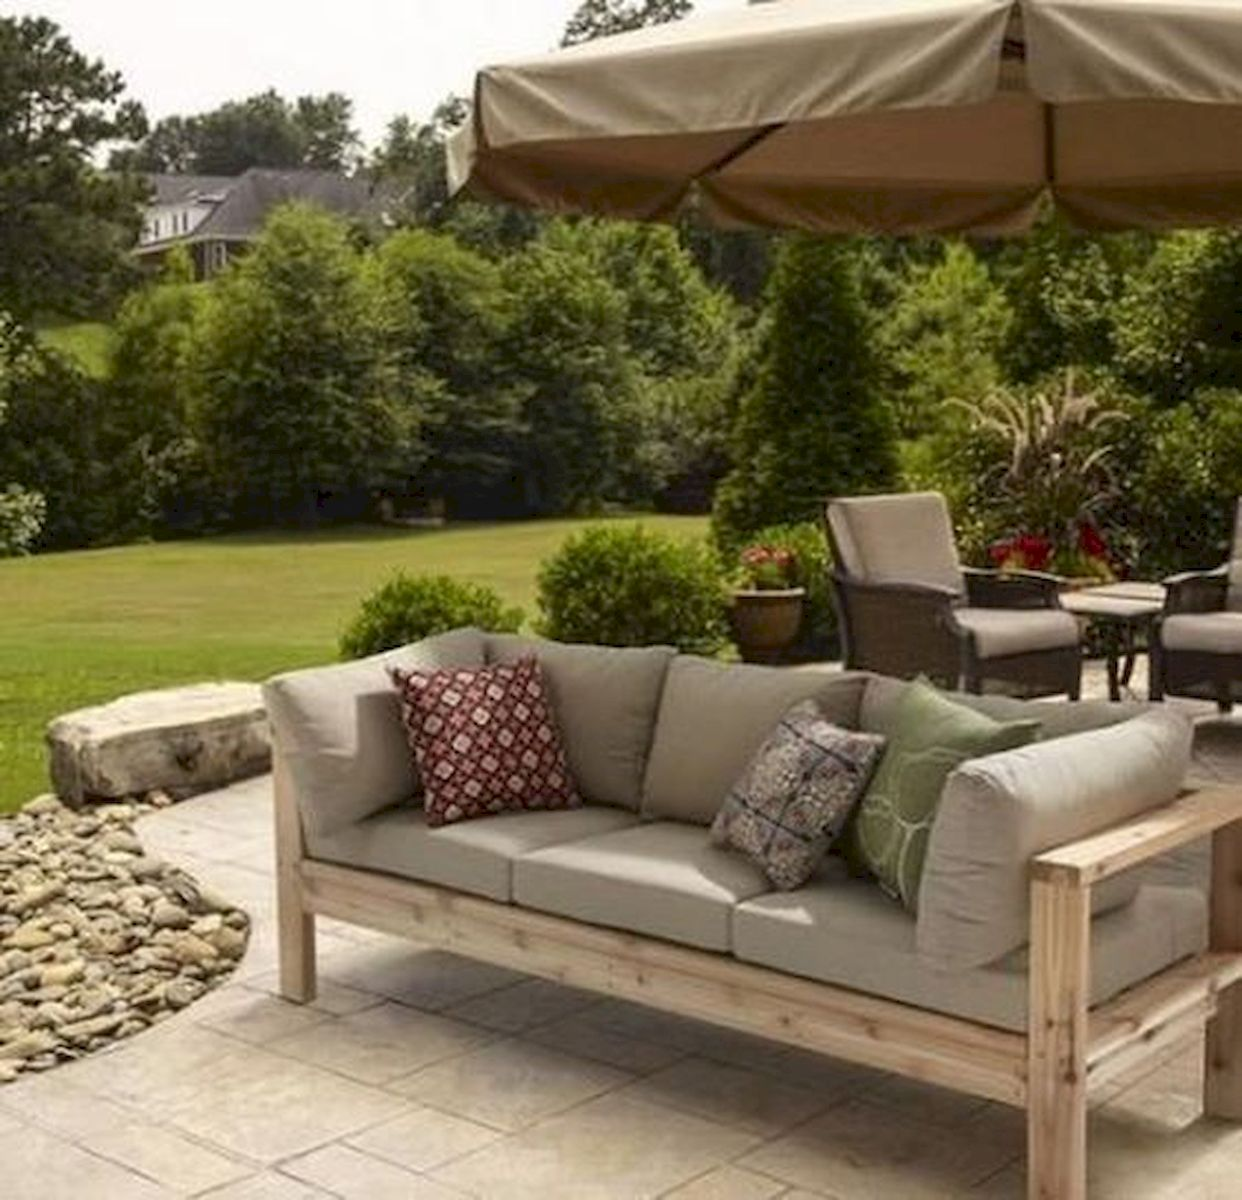 40 Awesome DIY Outdoor Bench Ideas For Backyard And Front Yard Garden (19)